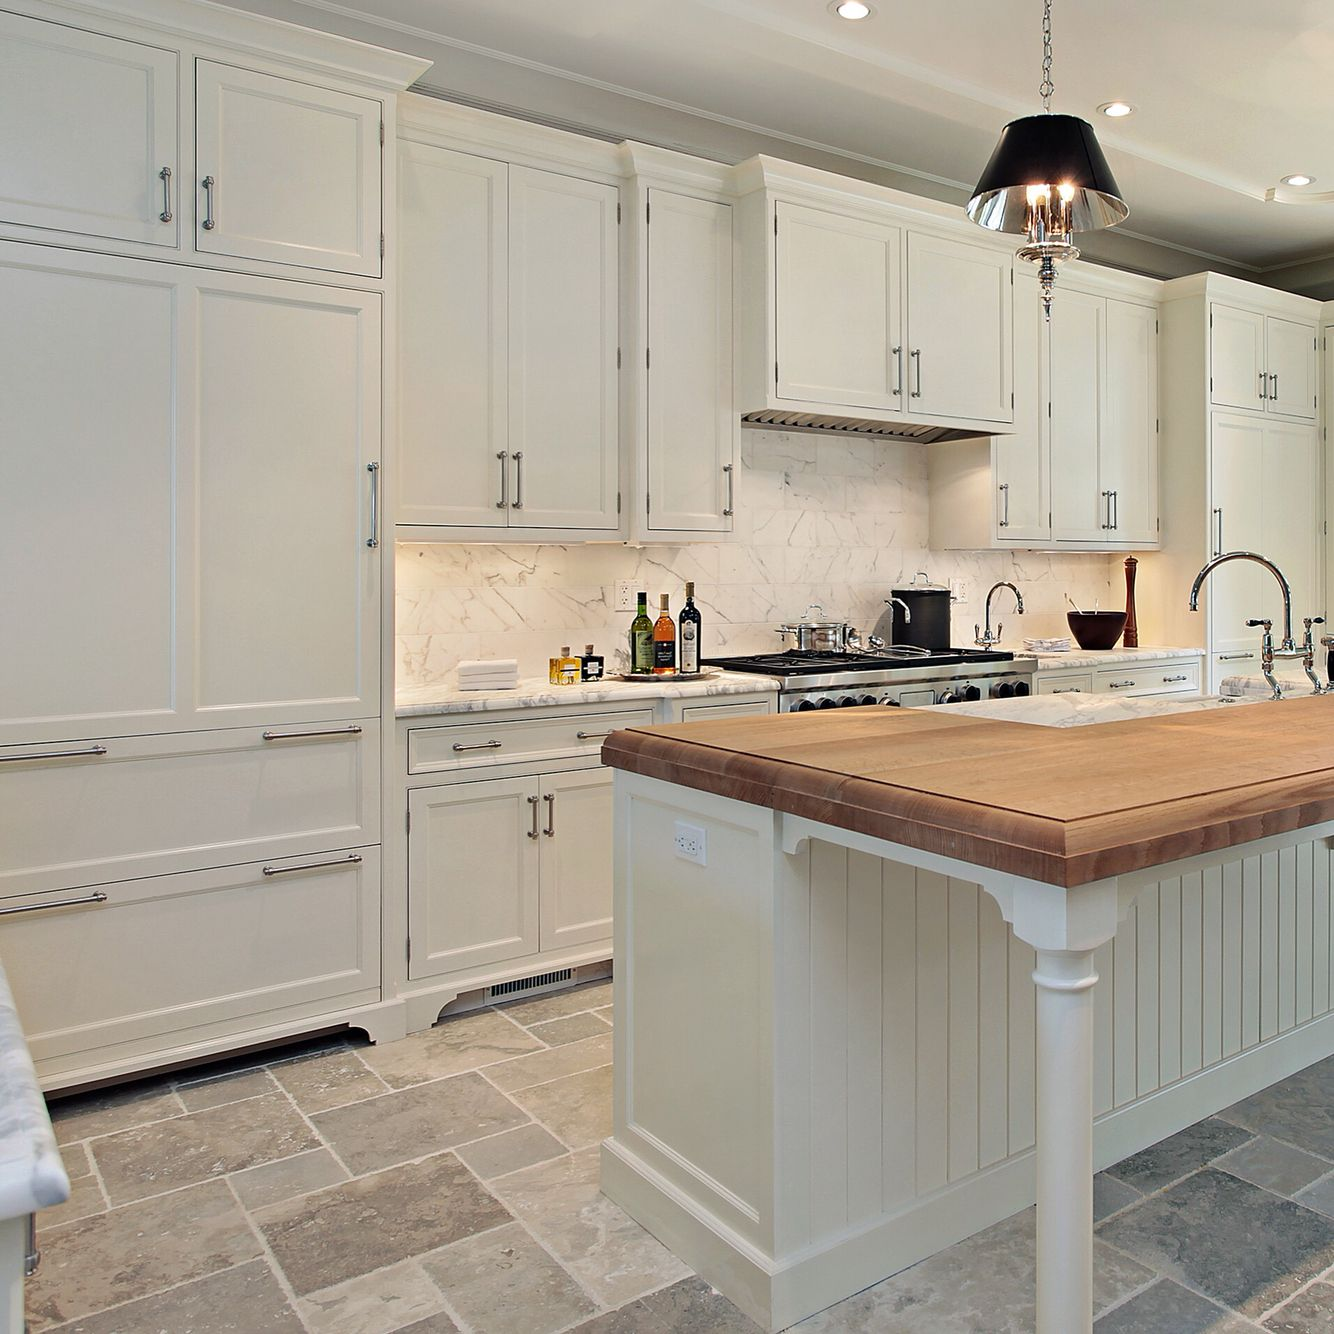 Prasada Kitchens And Fine Cabinetry: So Beautiful. A Wood Countertop Can Really Create Warmth